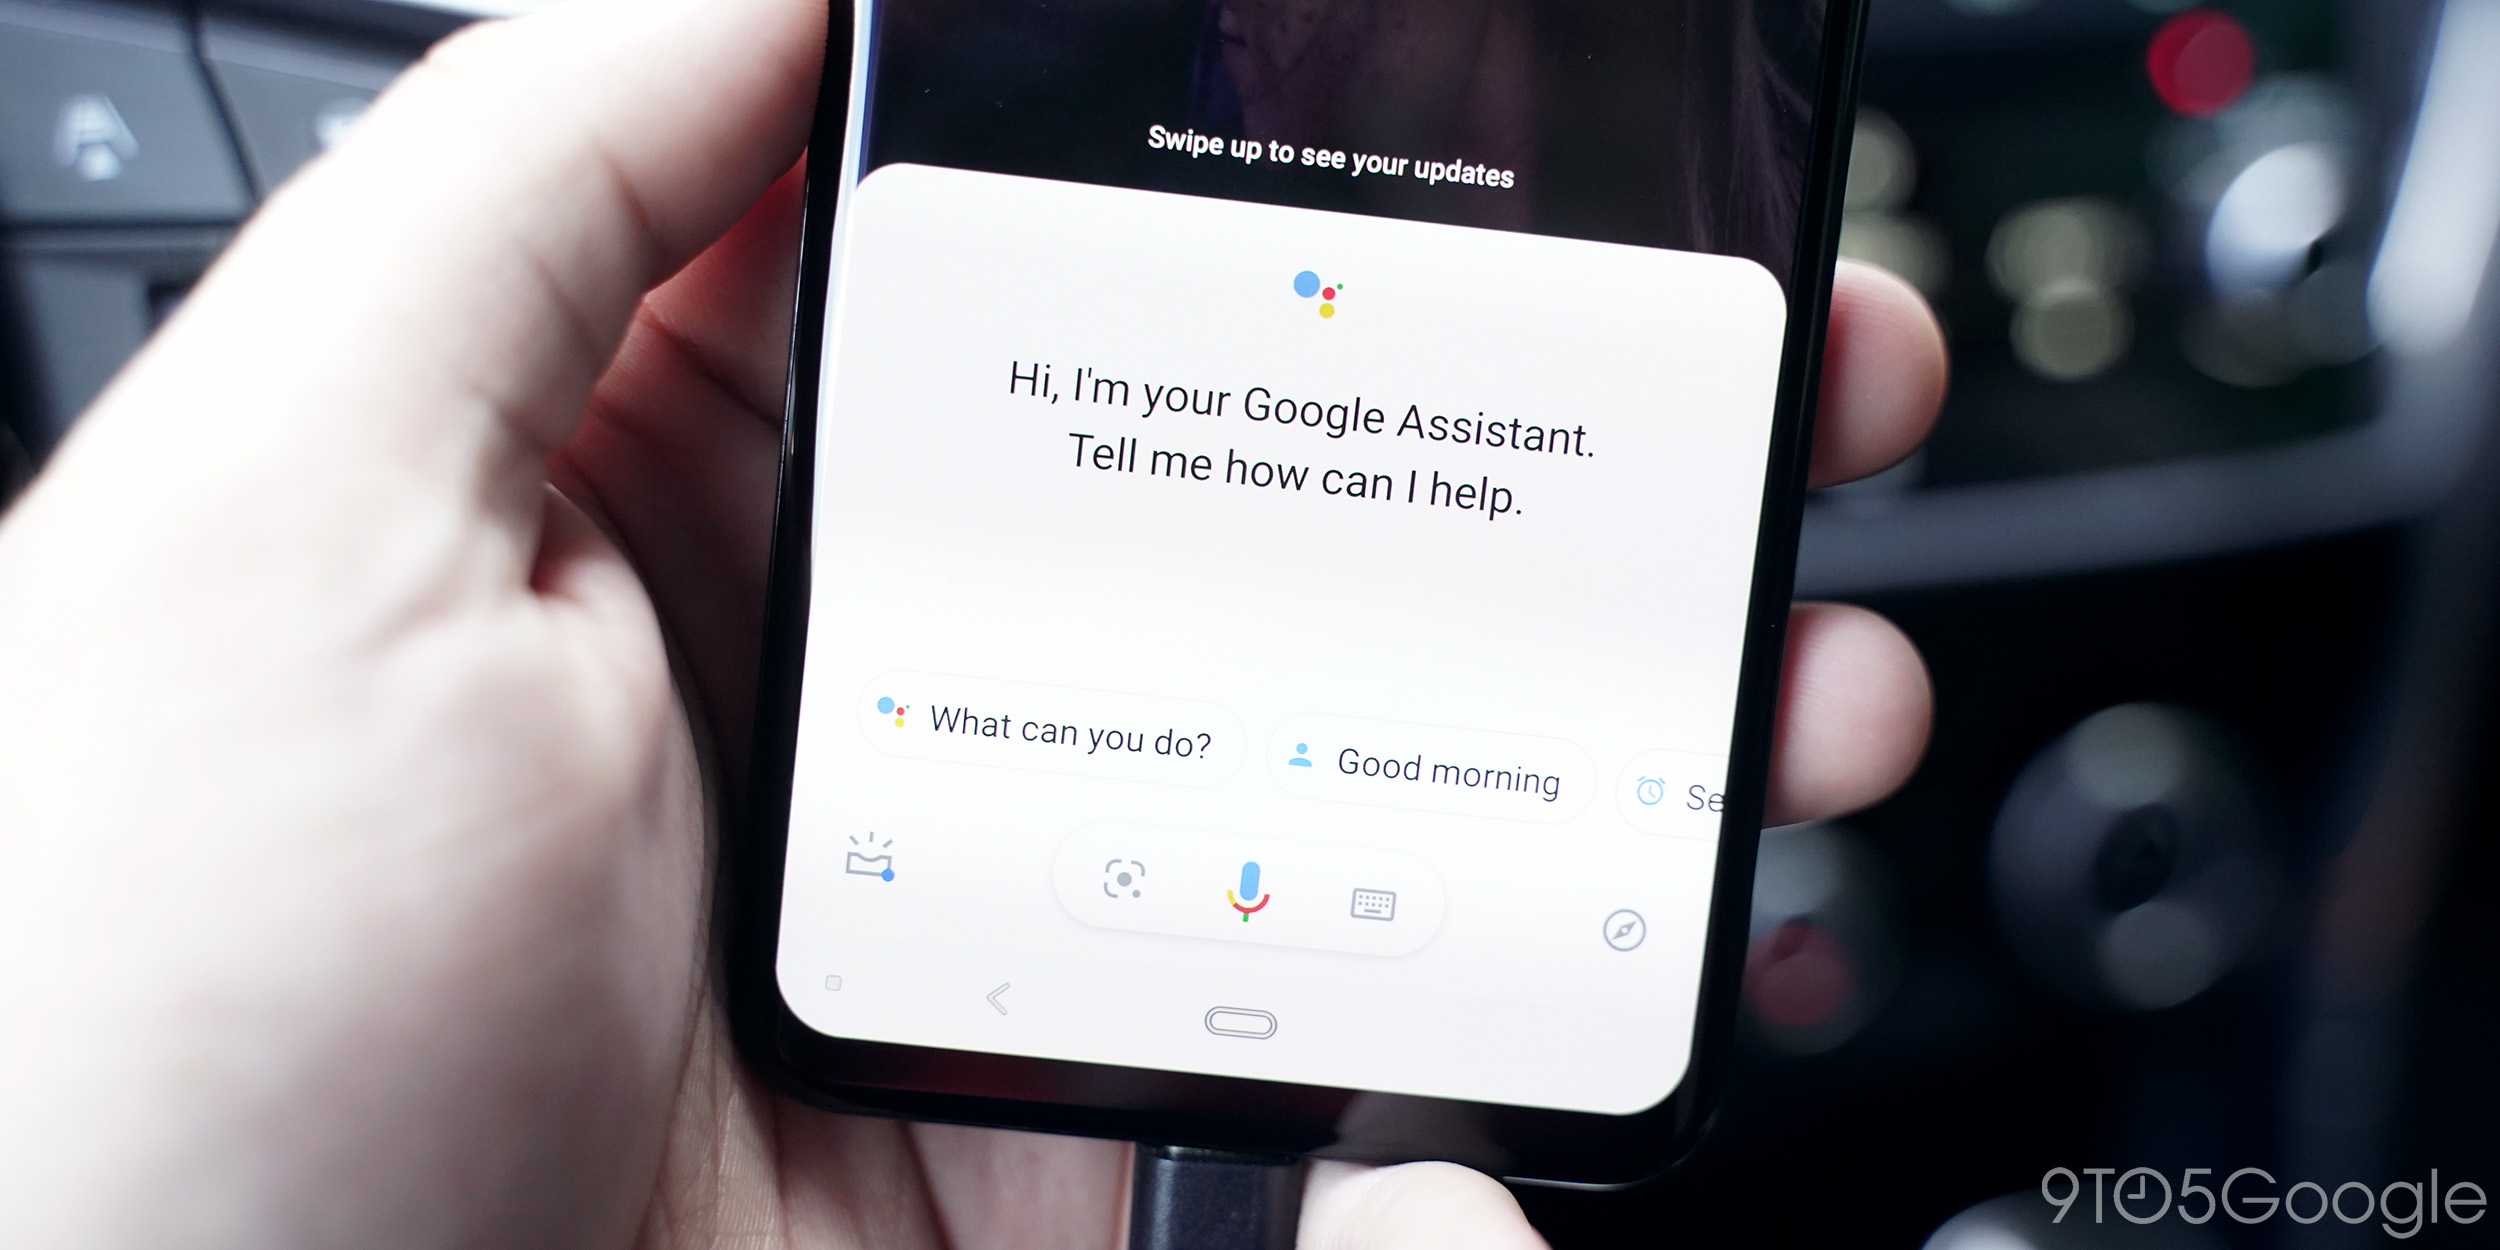 Google I/O 2019: What to expect - Pixel 3a, Android Q, more